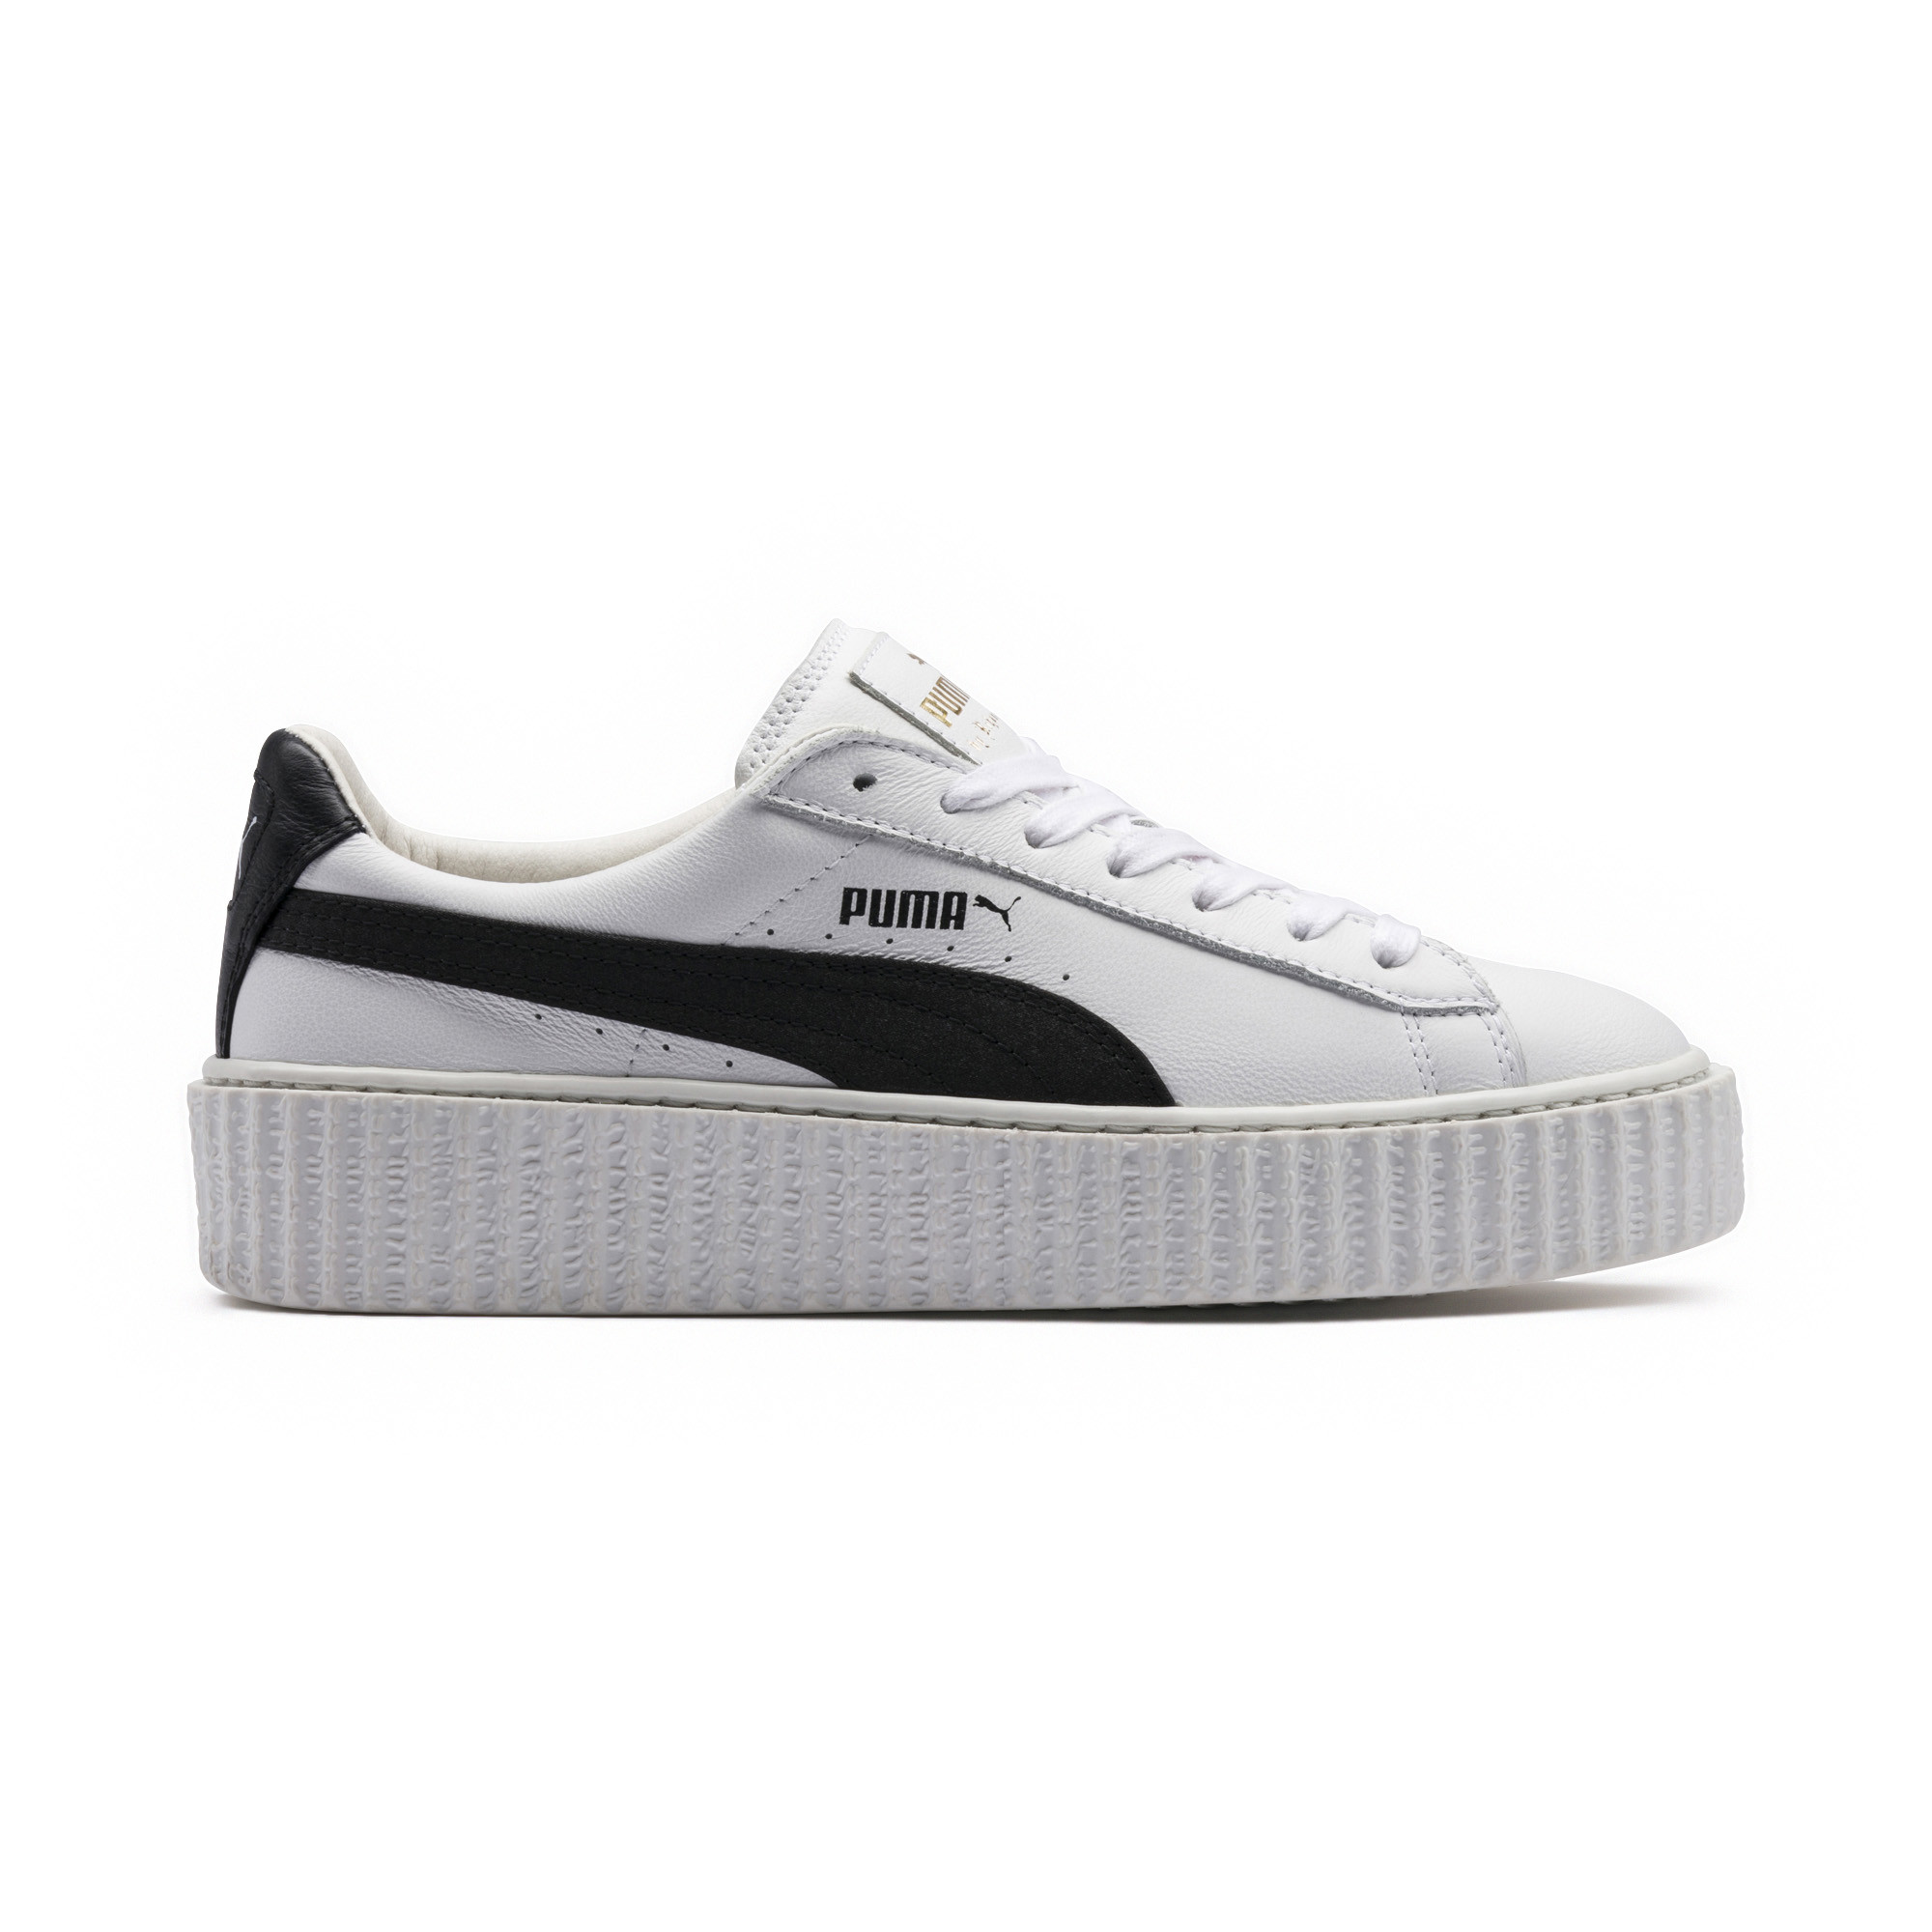 Rihanna Puma Femmes Chaussures Pour Creeper By 8onpxzn0wk roeQdCxWBE